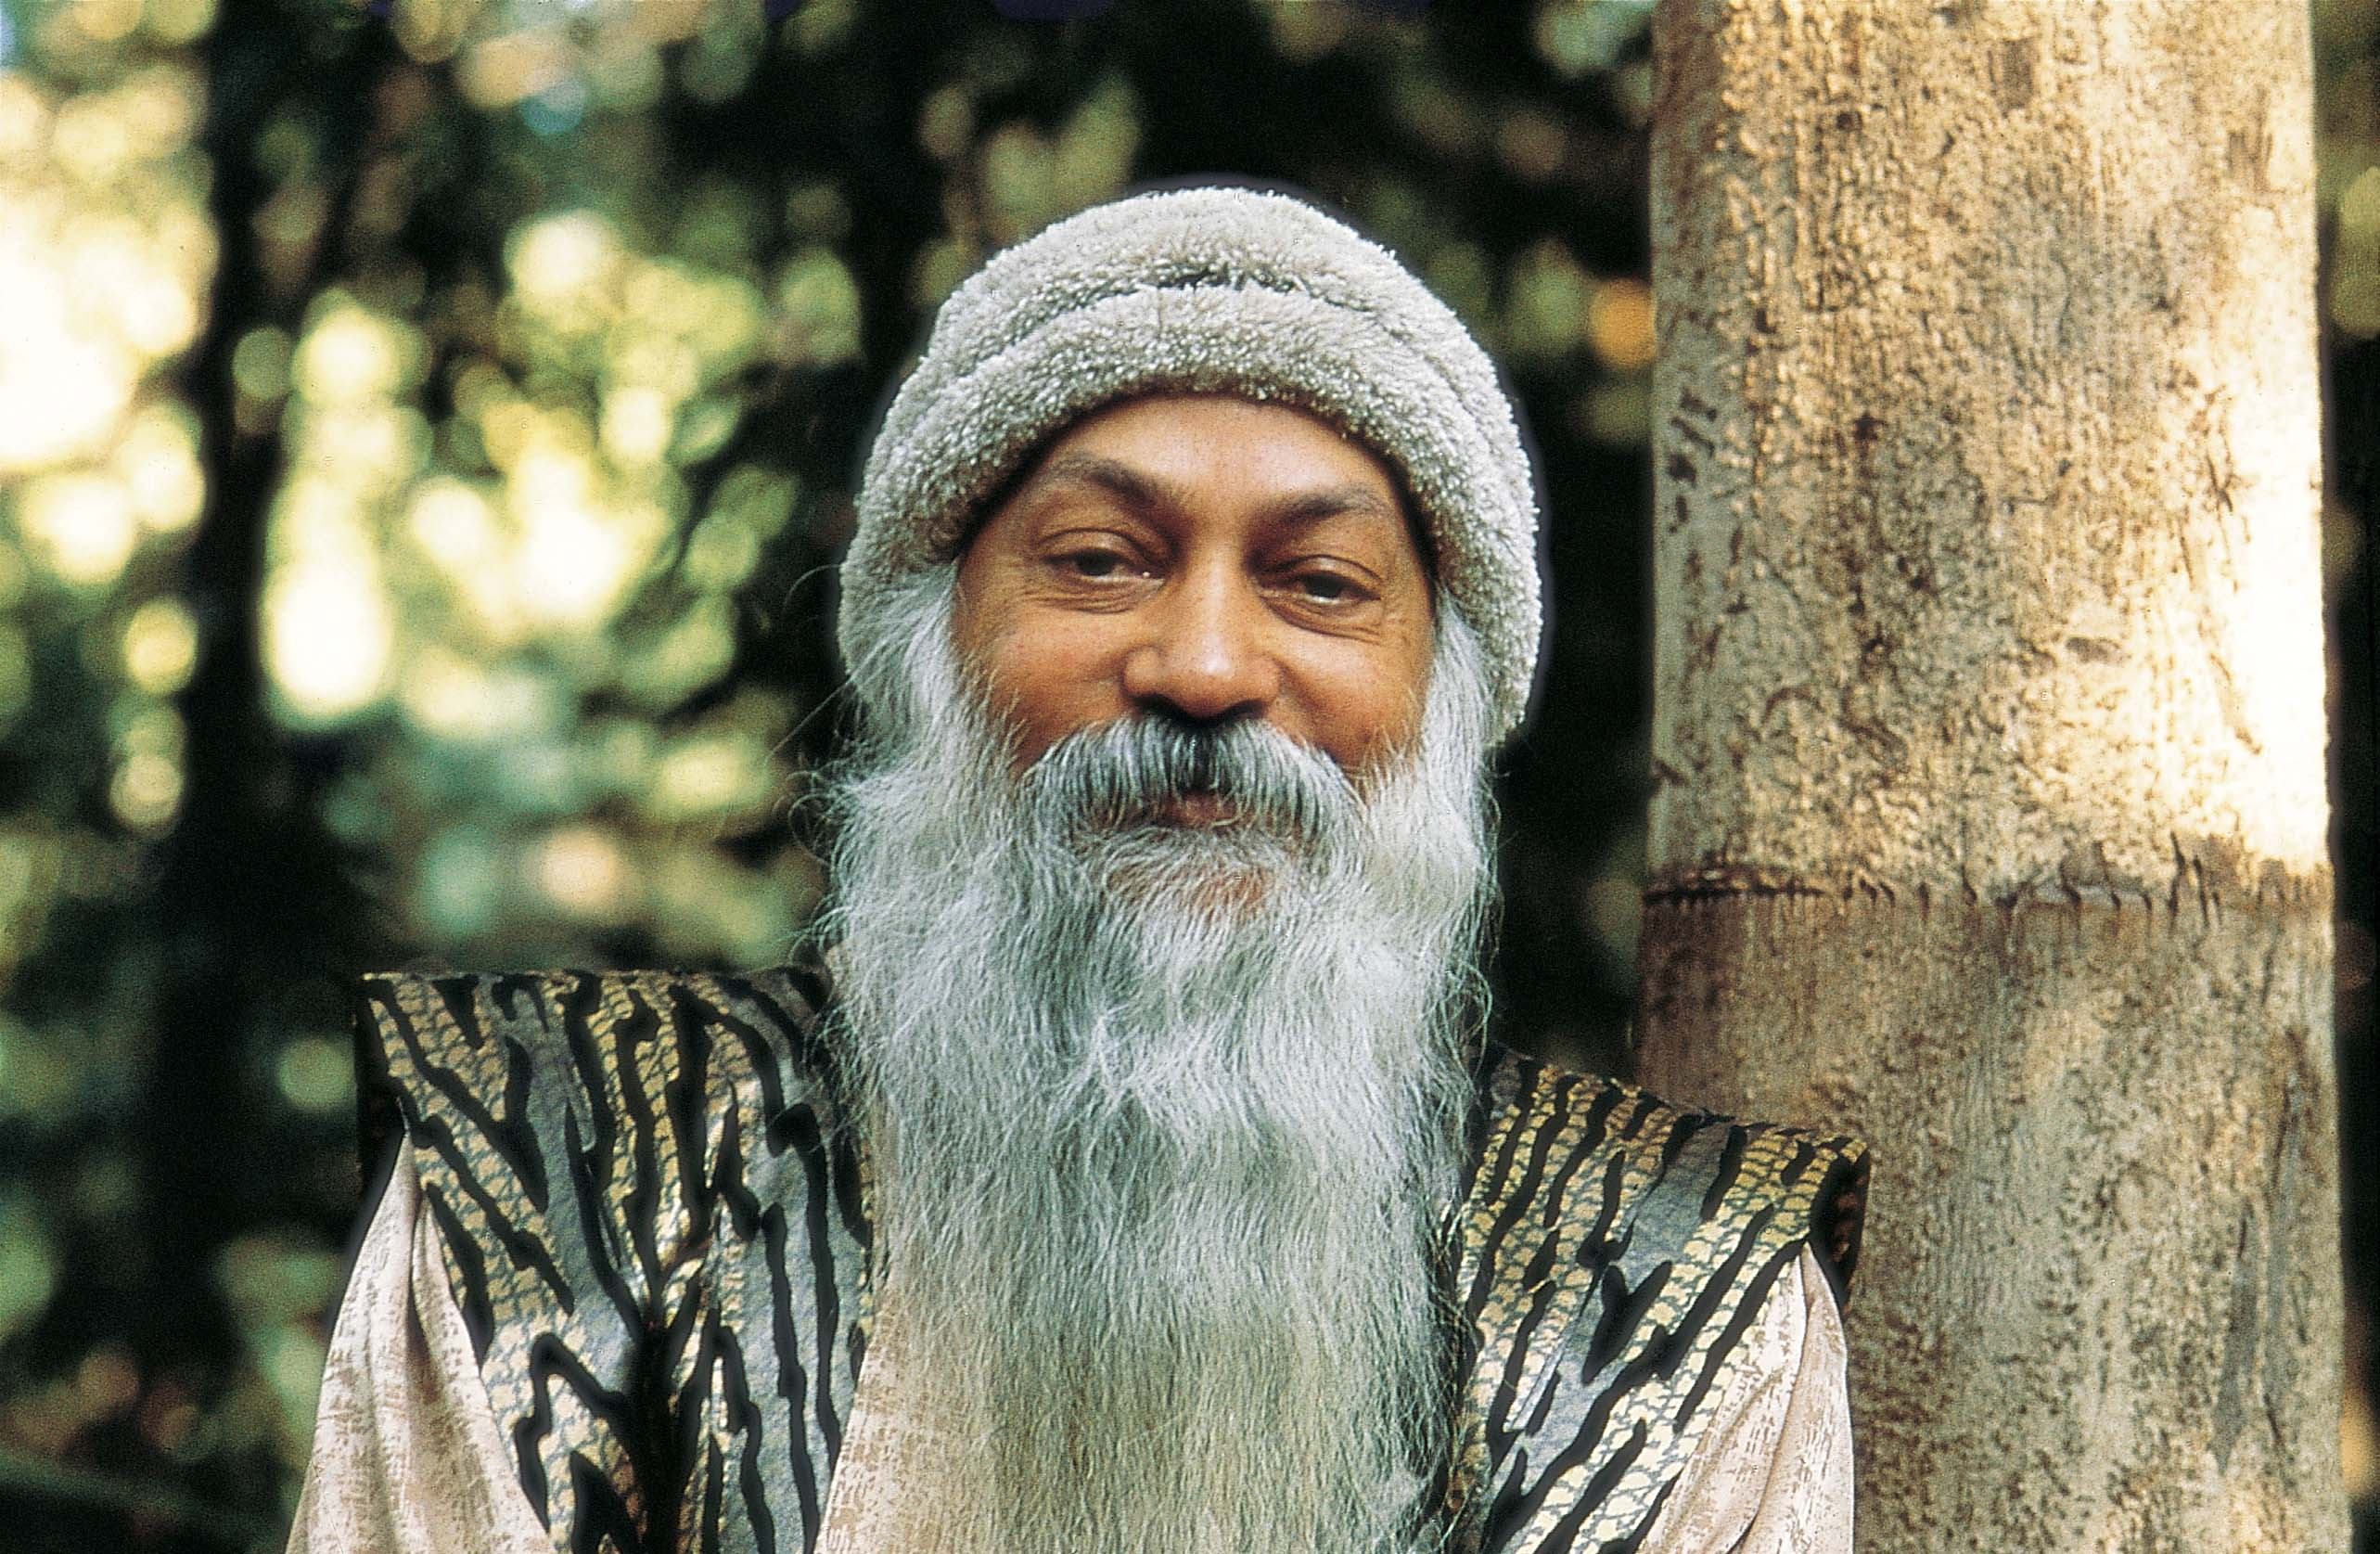 https://i2.wp.com/www.iosho.co.in/wp-content/gallery/osho-portraits-ii/osho2064.jpg